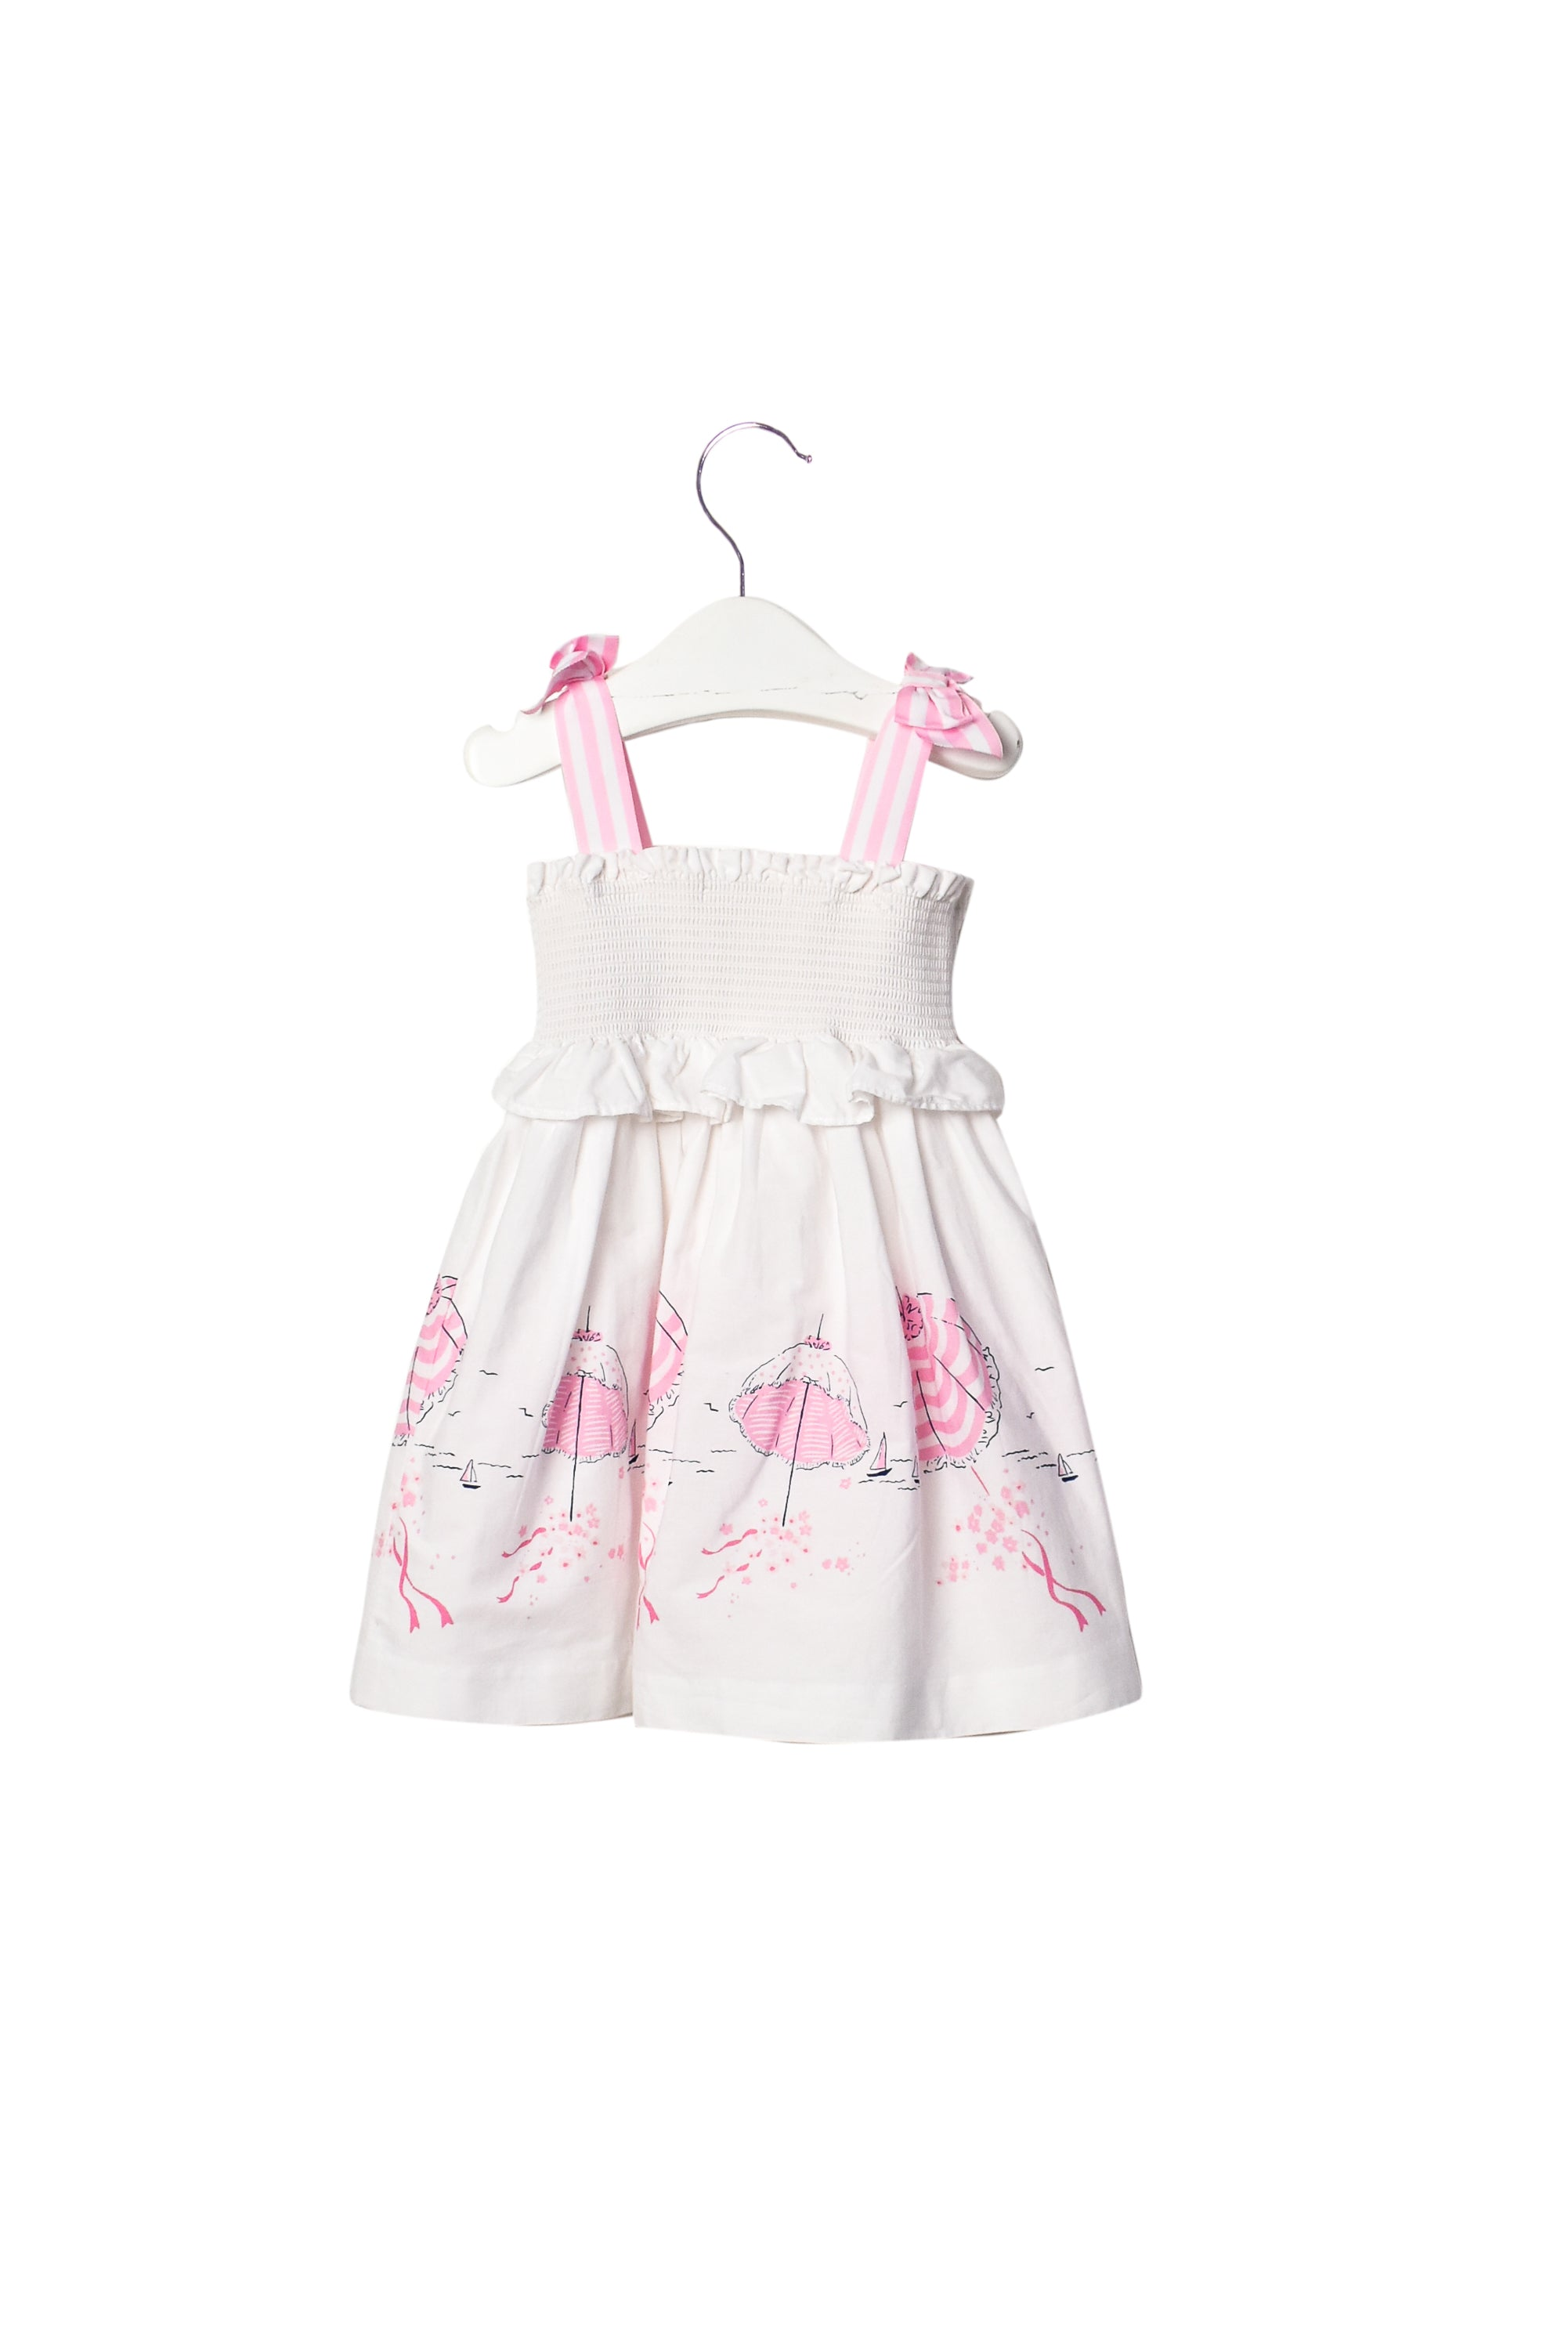 10008148 Janie & Jack Baby ~ Dress 6-12M at Retykle